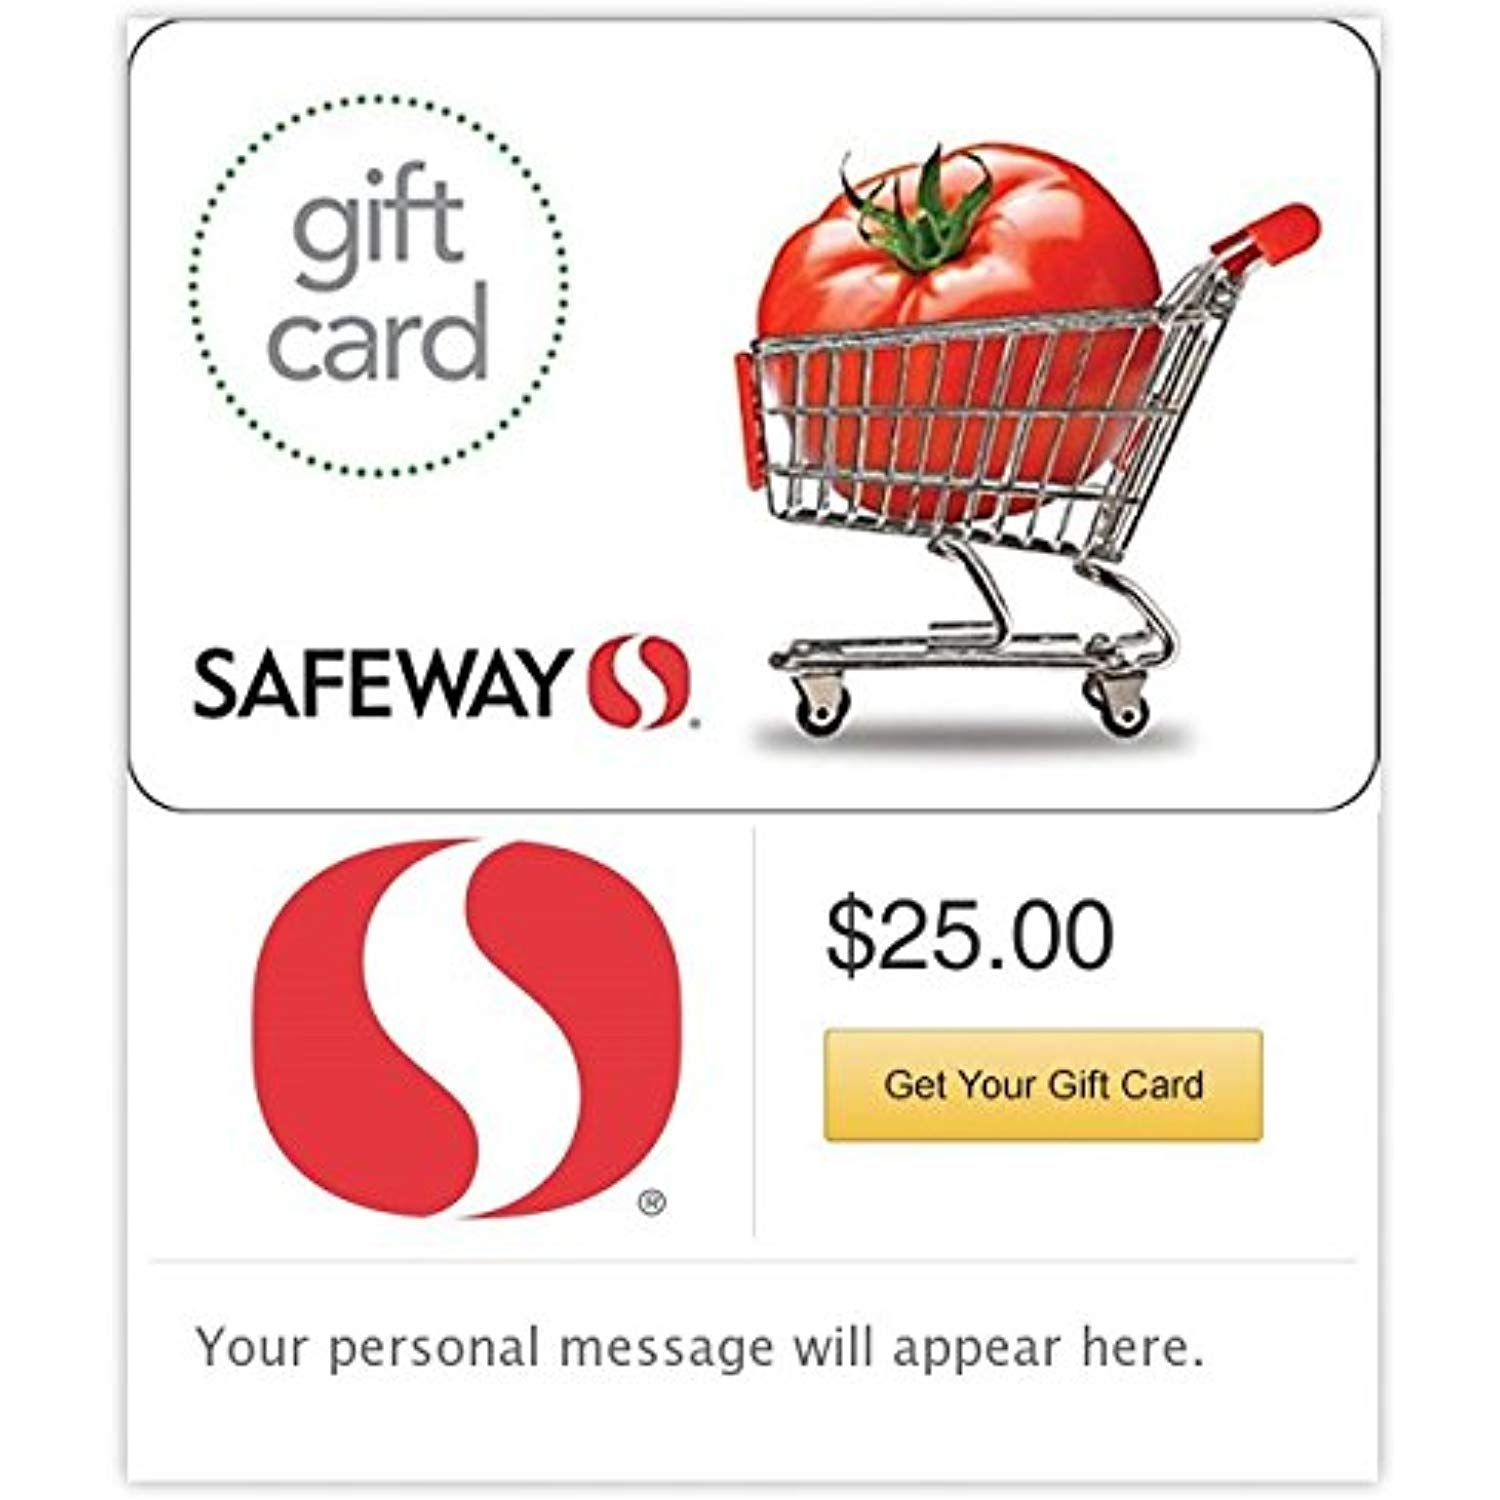 Safeway - E-mail Delivery #GiftCards | Gift Cards | Pinterest ...